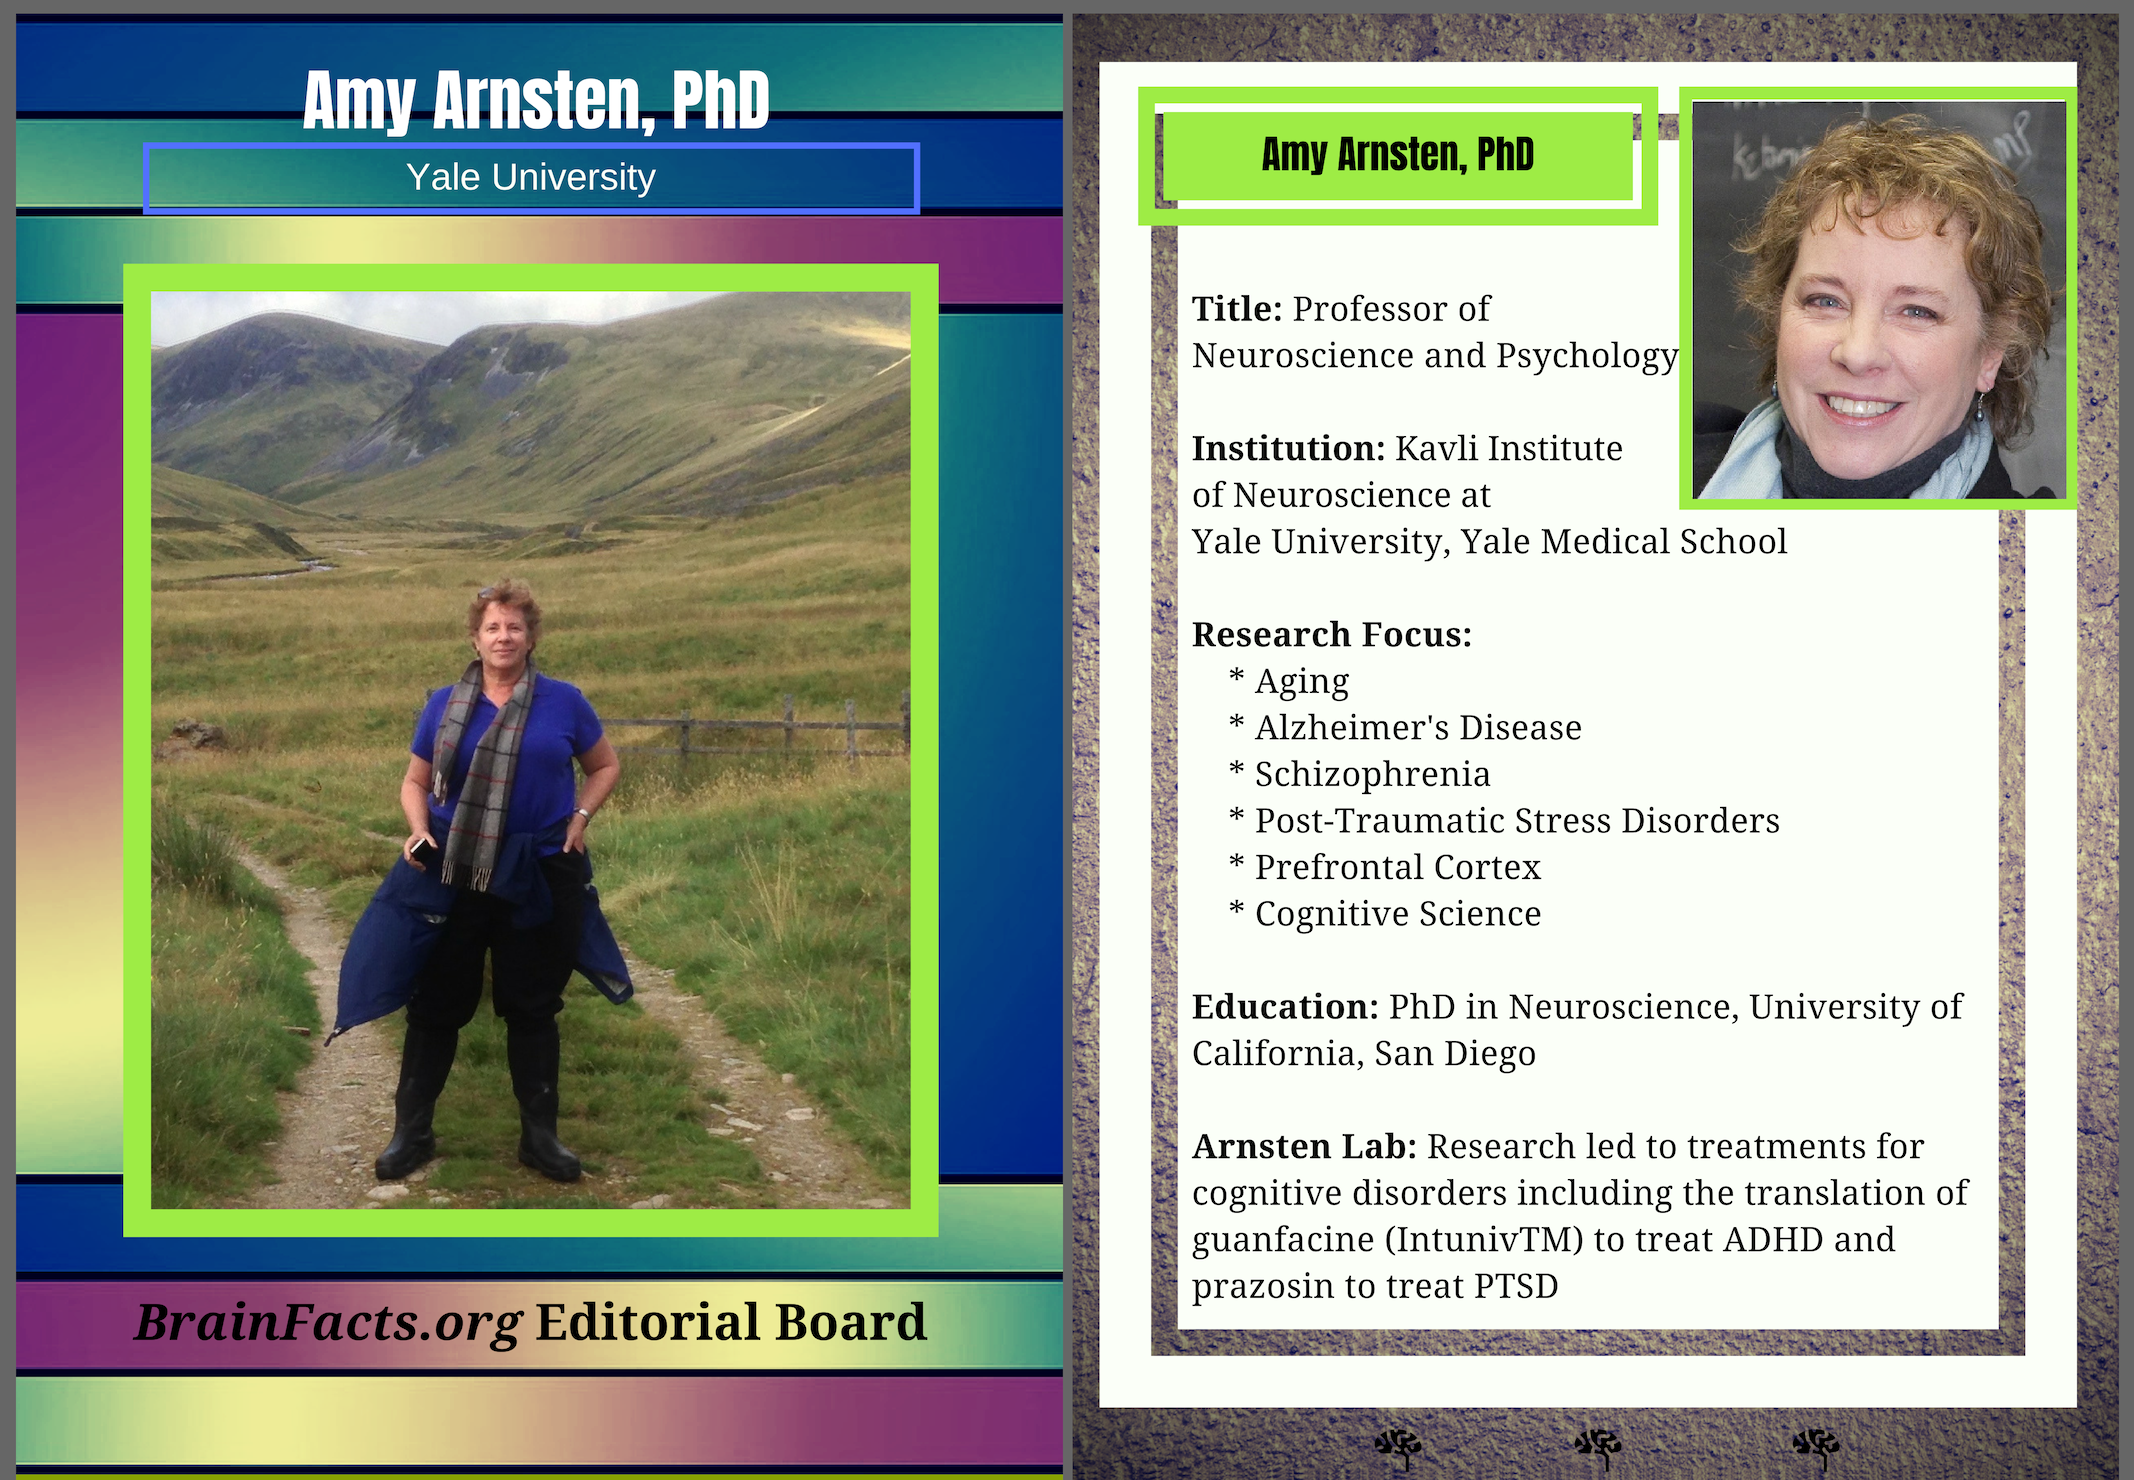 Photograph of Amy Arnsten with facts on the side